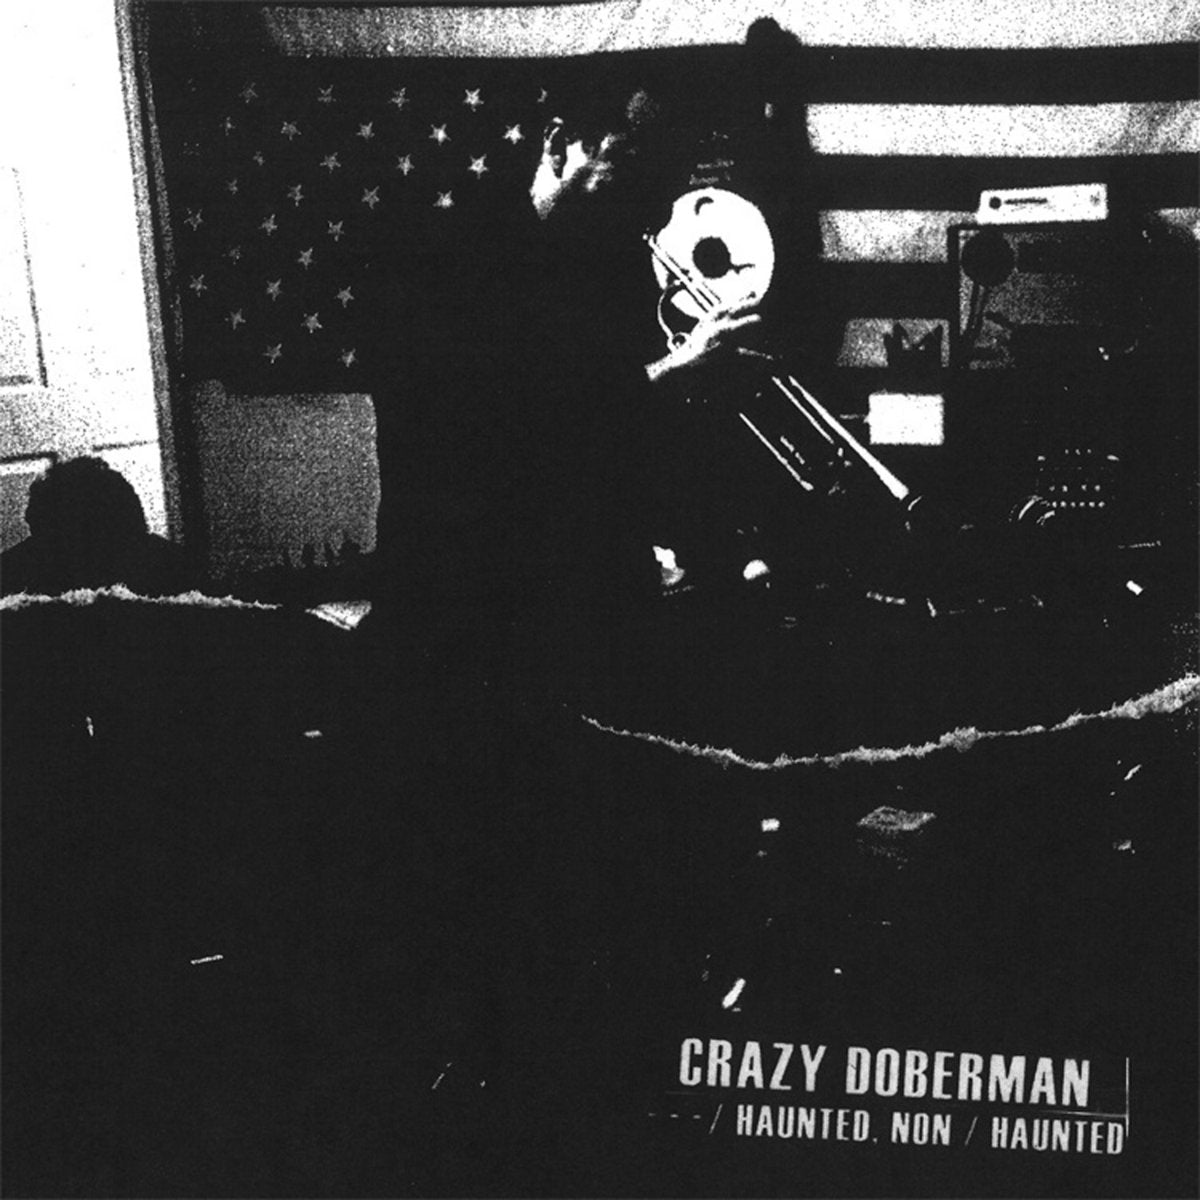 Crazy Doberman - Haunted, Non / Haunted LP